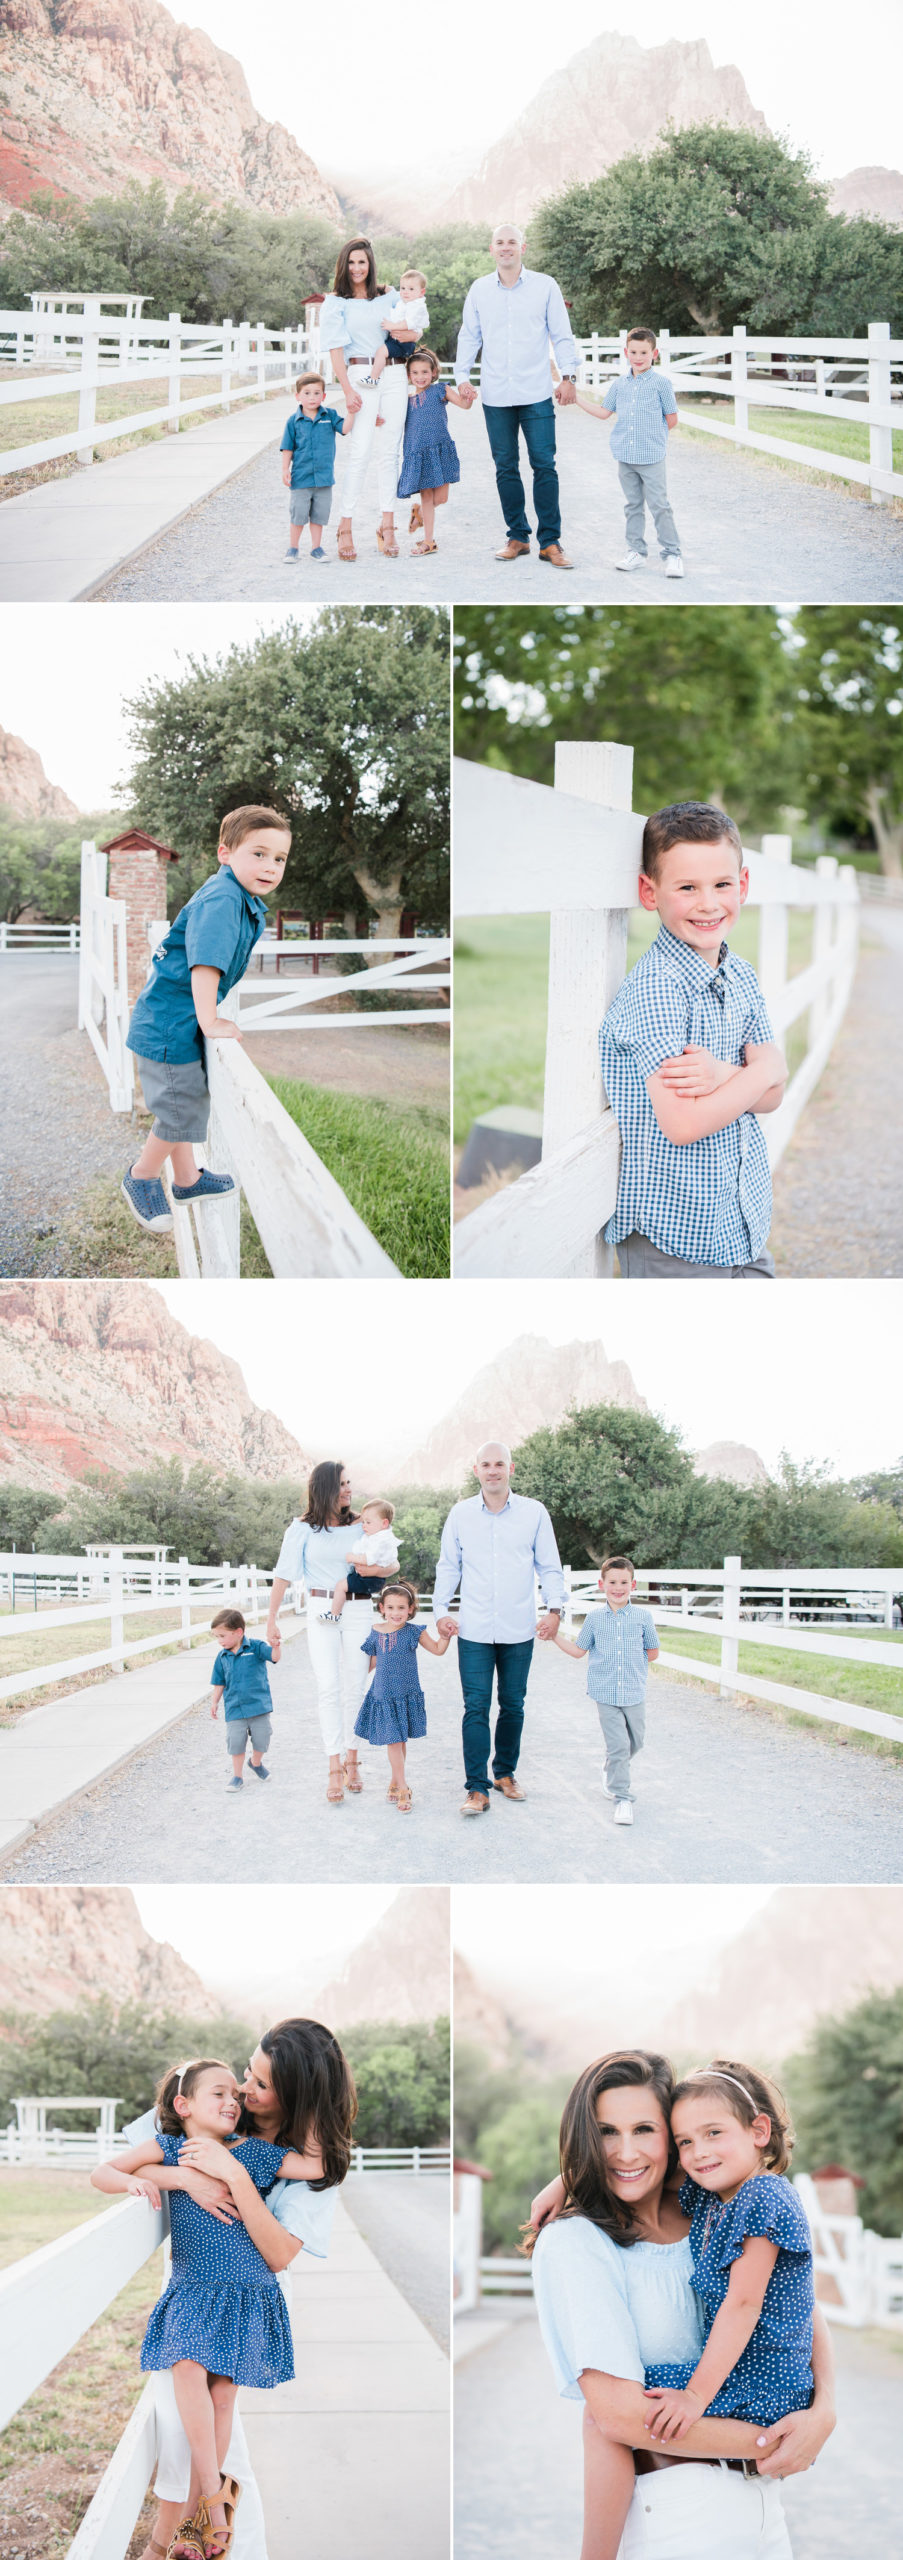 Spring Mountain Ranch Family Photoshoot | Kristen Marie Weddings + Portraits | Las Vegas Family Photographer